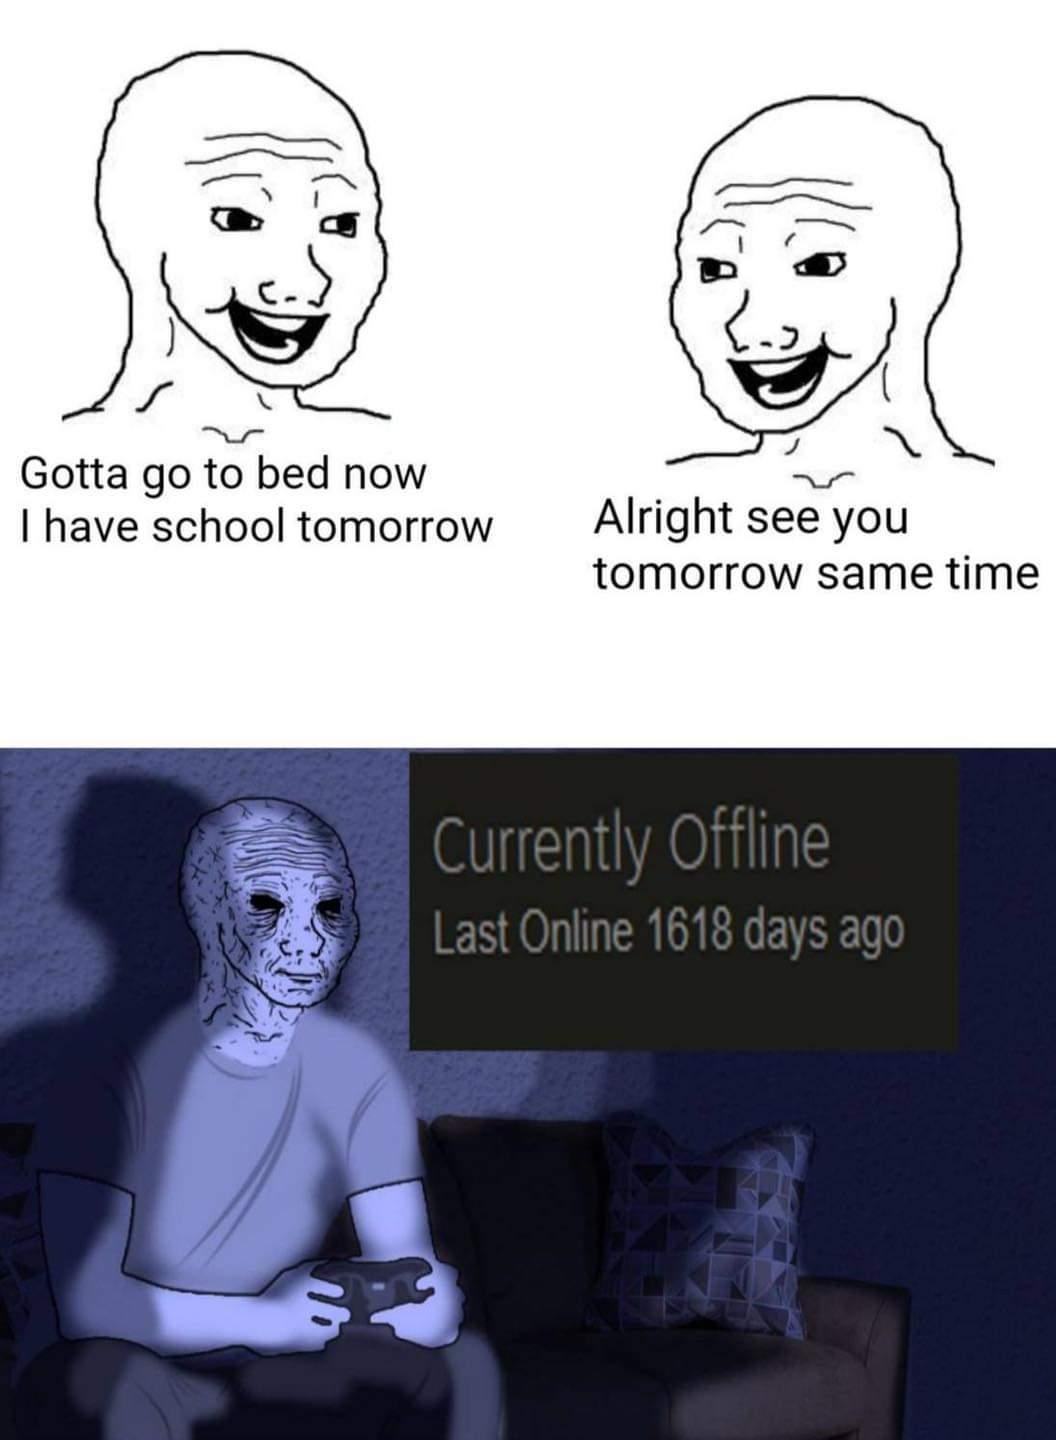 Memes Xbox live currently off-line